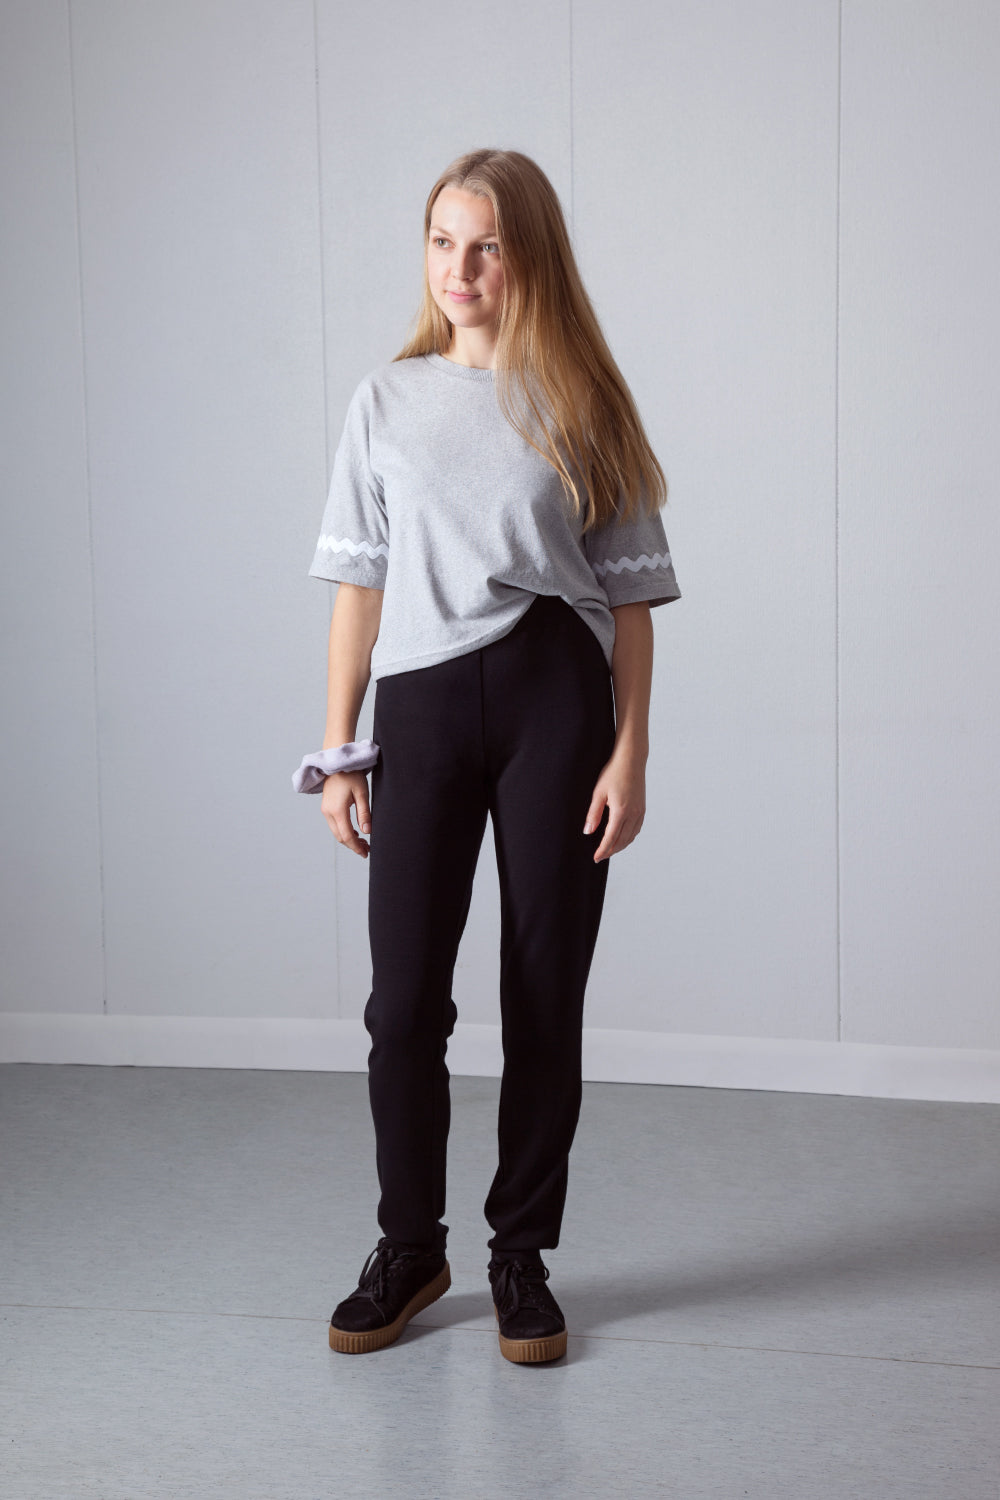 Shy Vibes Club Act Normal Pants, ethically made organic wool pants